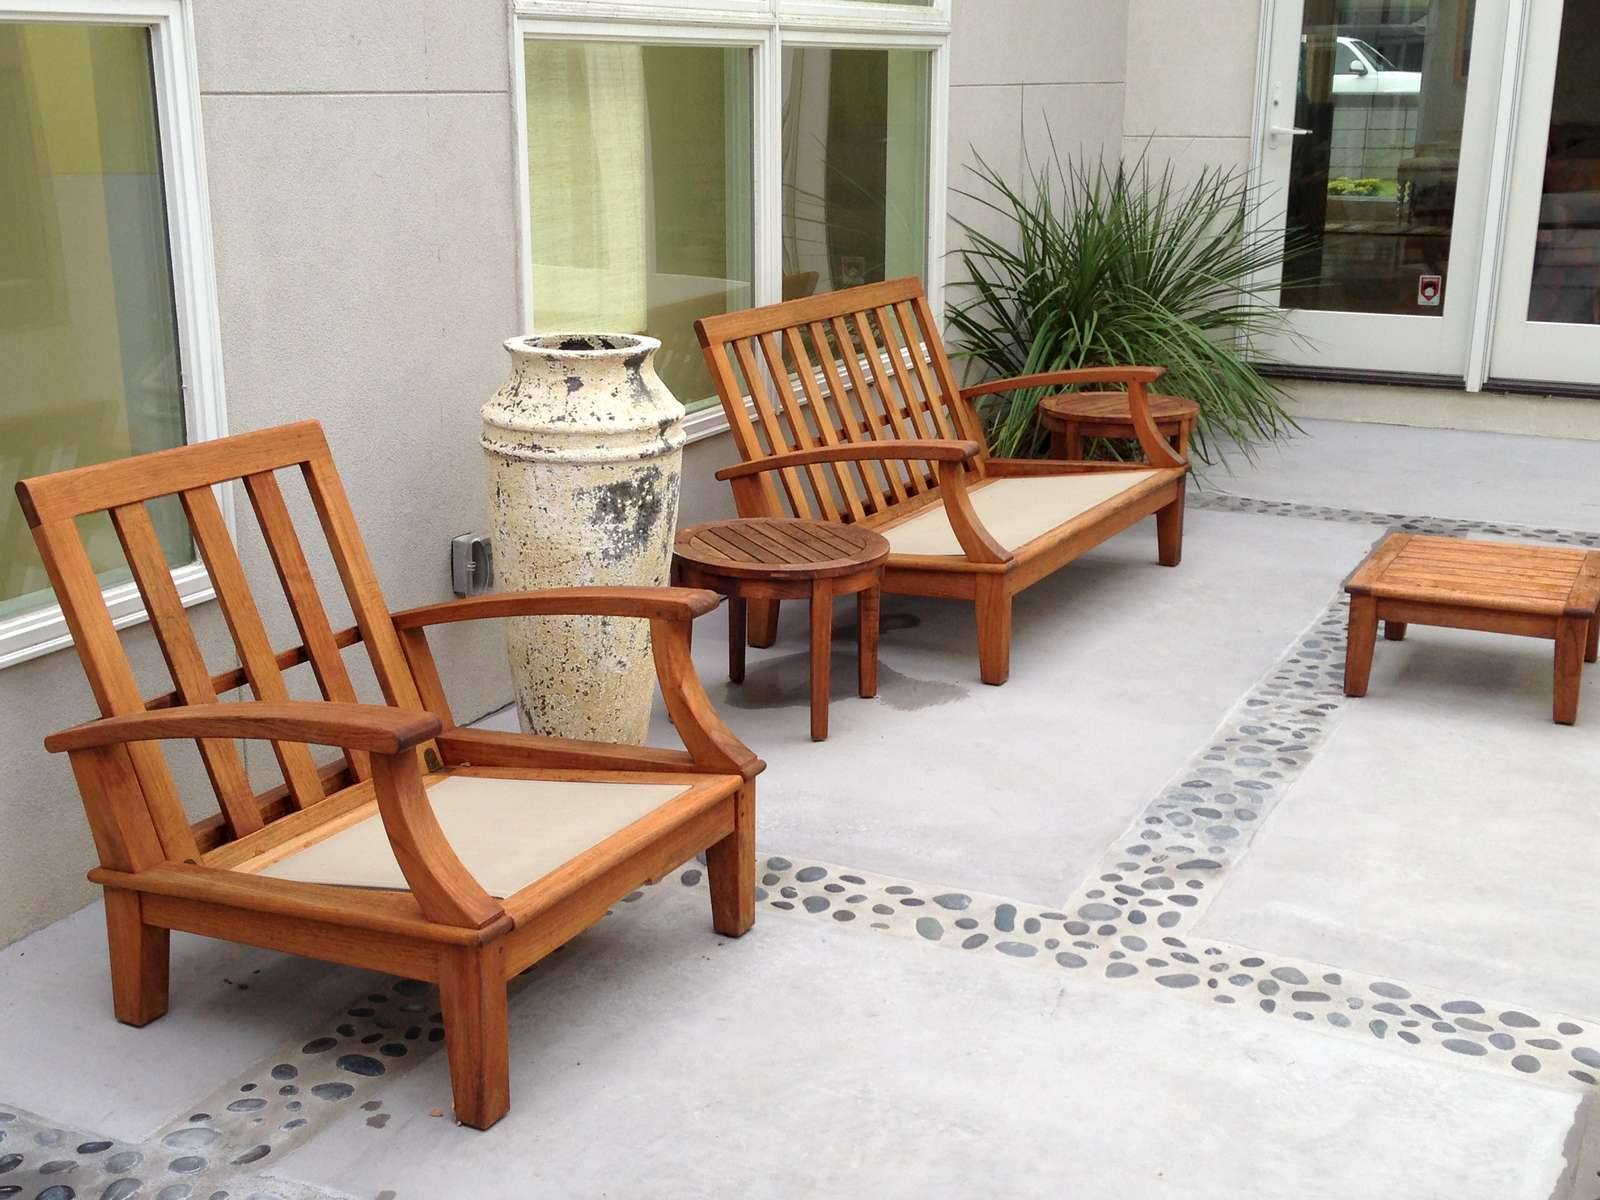 Tucked away to lthe left of the house is an existing private patio. We resurfaced the patio and installed pressed Mexican beach pebbles. Hardwood seating beckons family and friends to relax and linger in the courtyard.